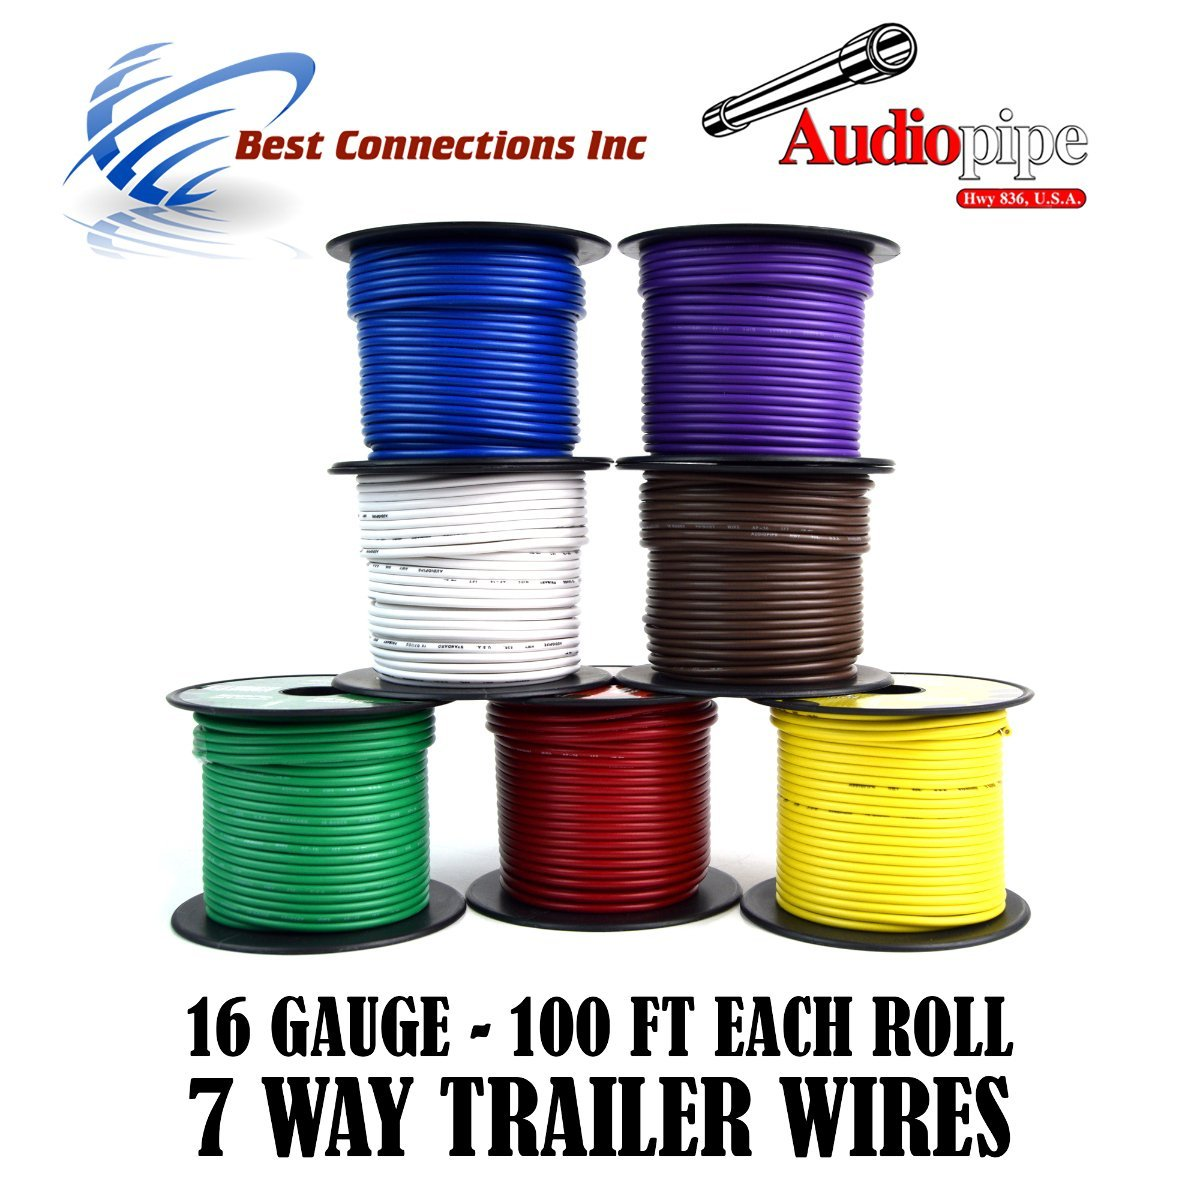 Amazon.com: Trailer Wire Light Cable for Harness 7 Way Cord 16 Gauge -  100ft roll - 7 Rolls: Automotive